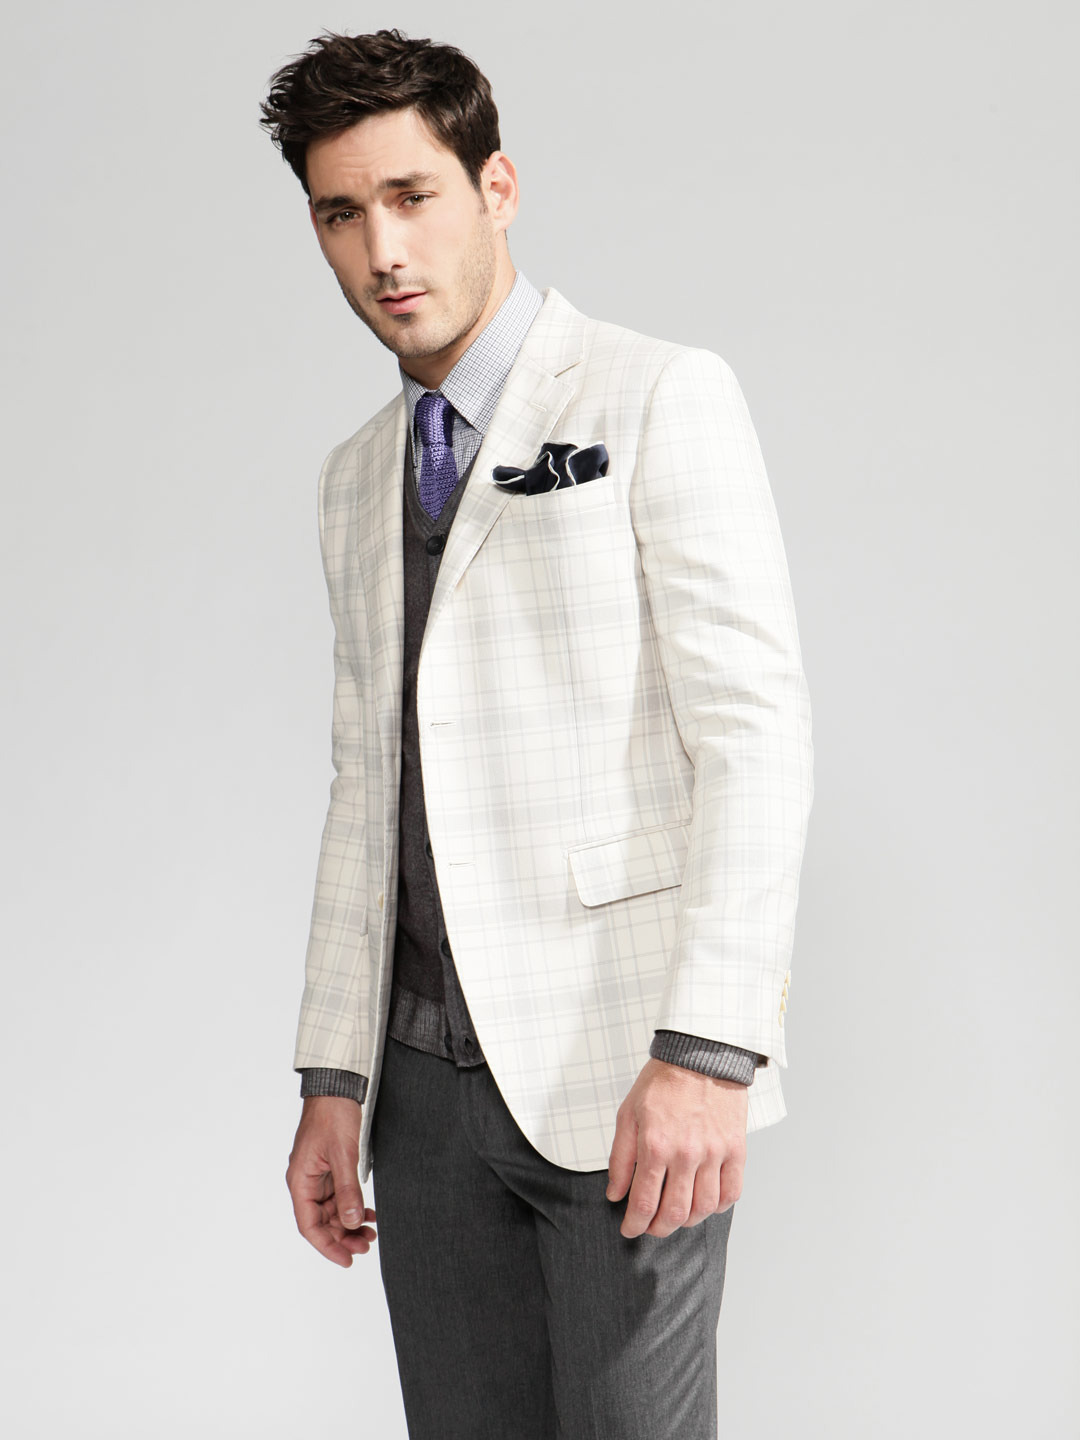 What to wear: June 2011